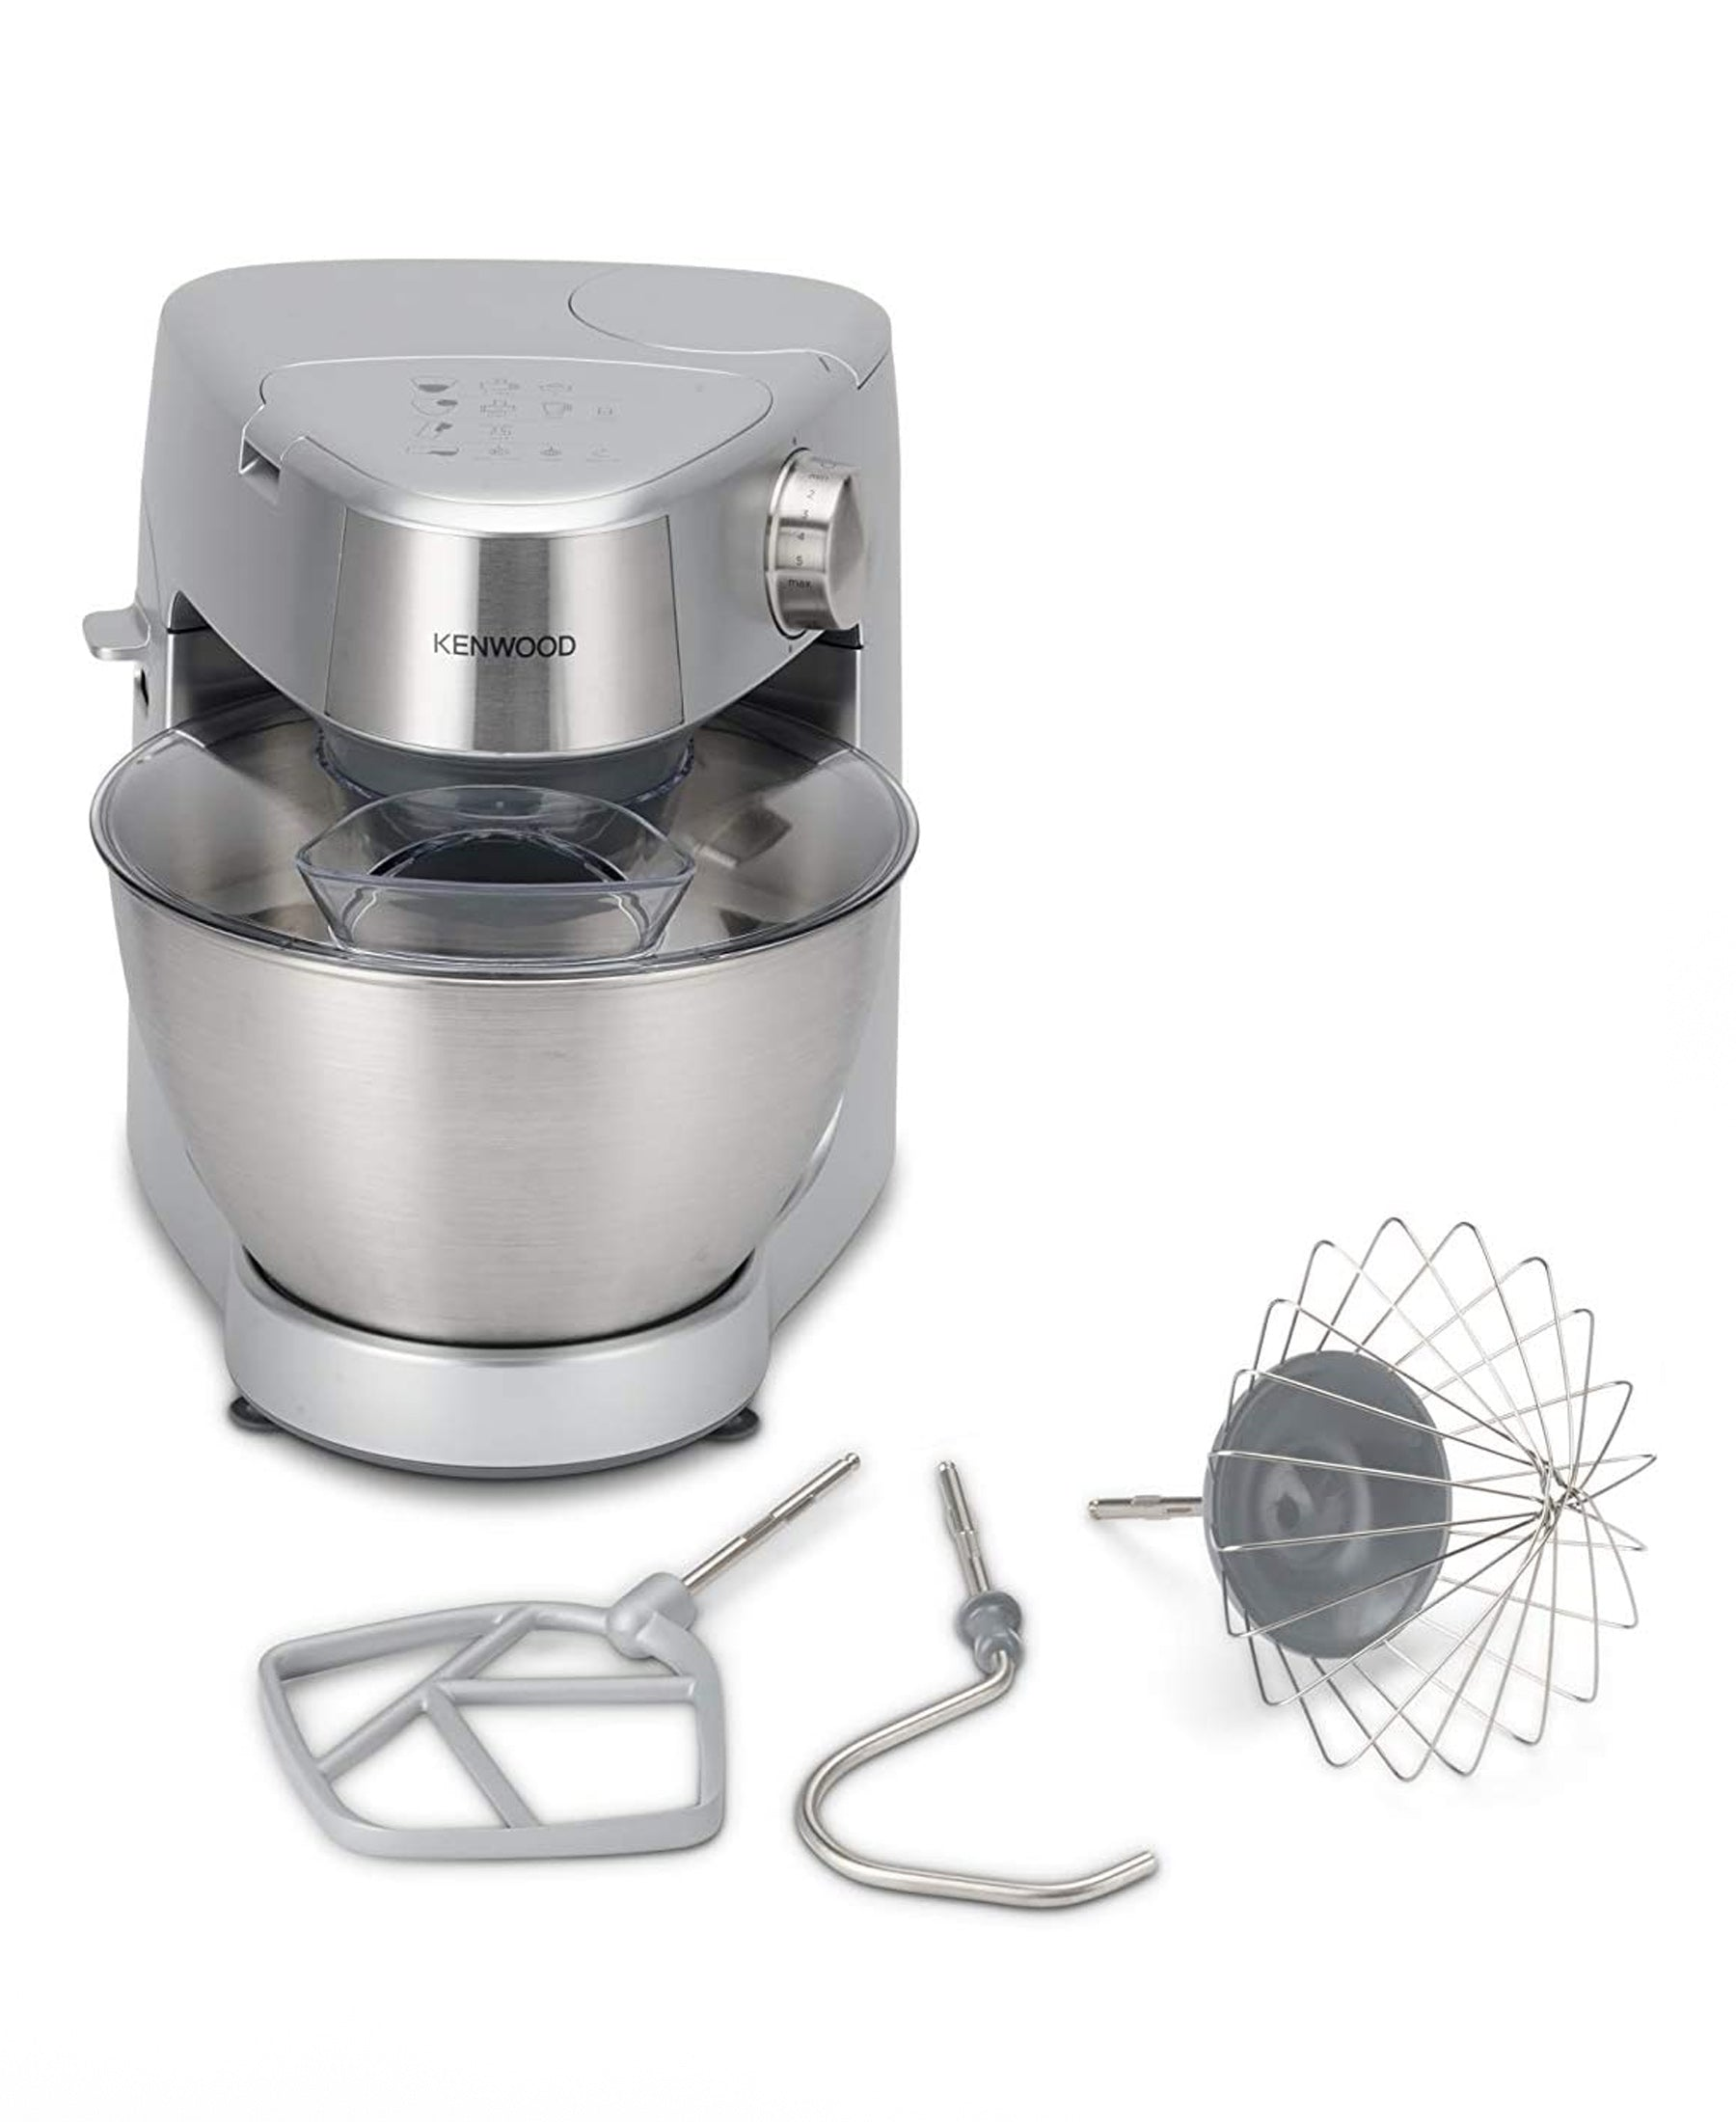 Kenwood Prospero Plus Stand Mixer Single Pack - Silver